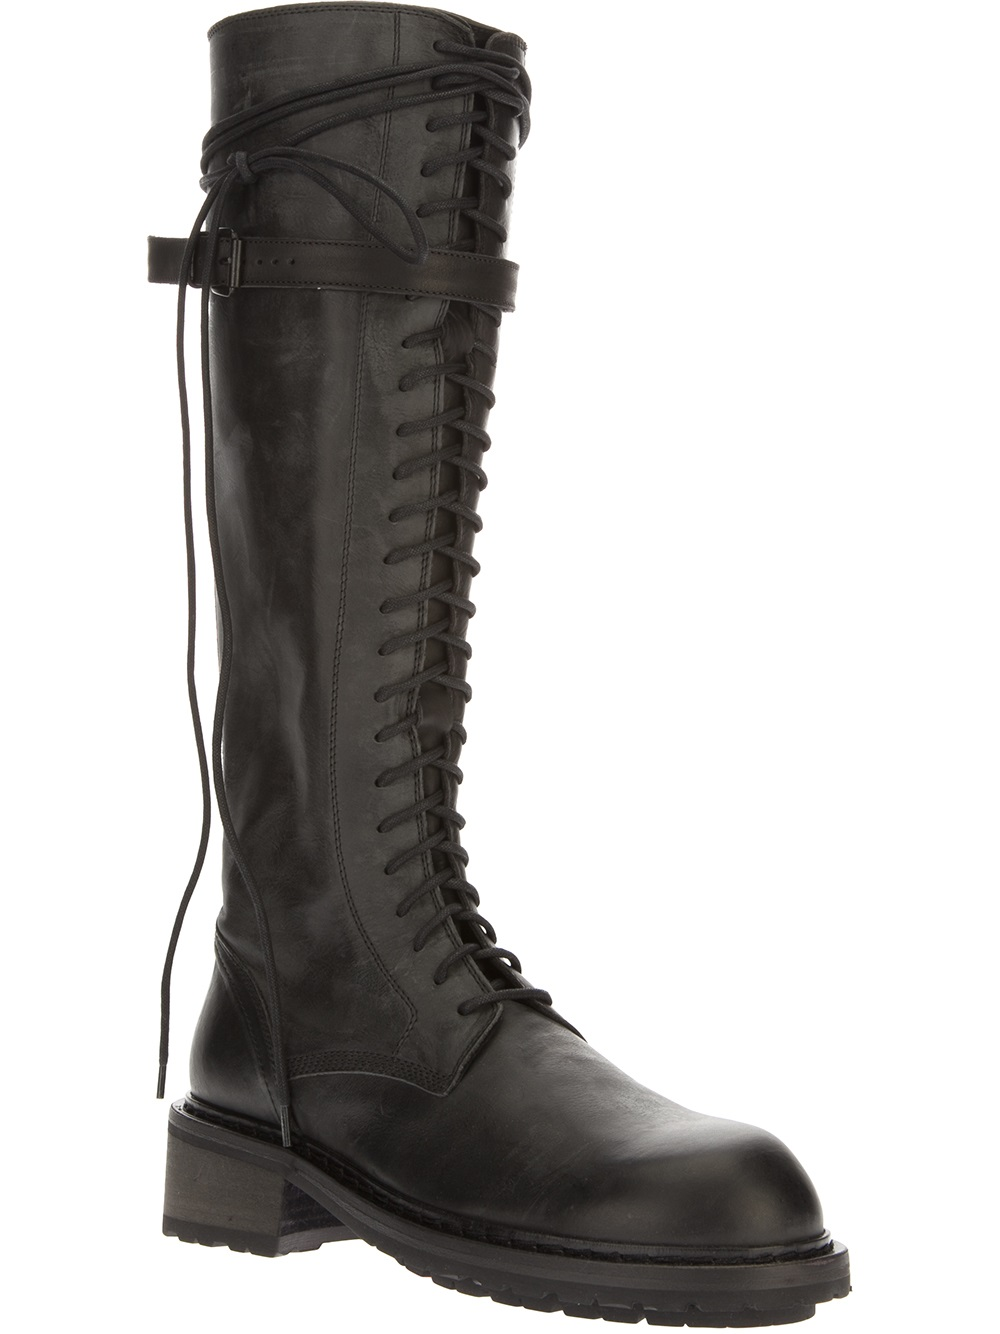 demeulemeester knee high combat boot in black lyst